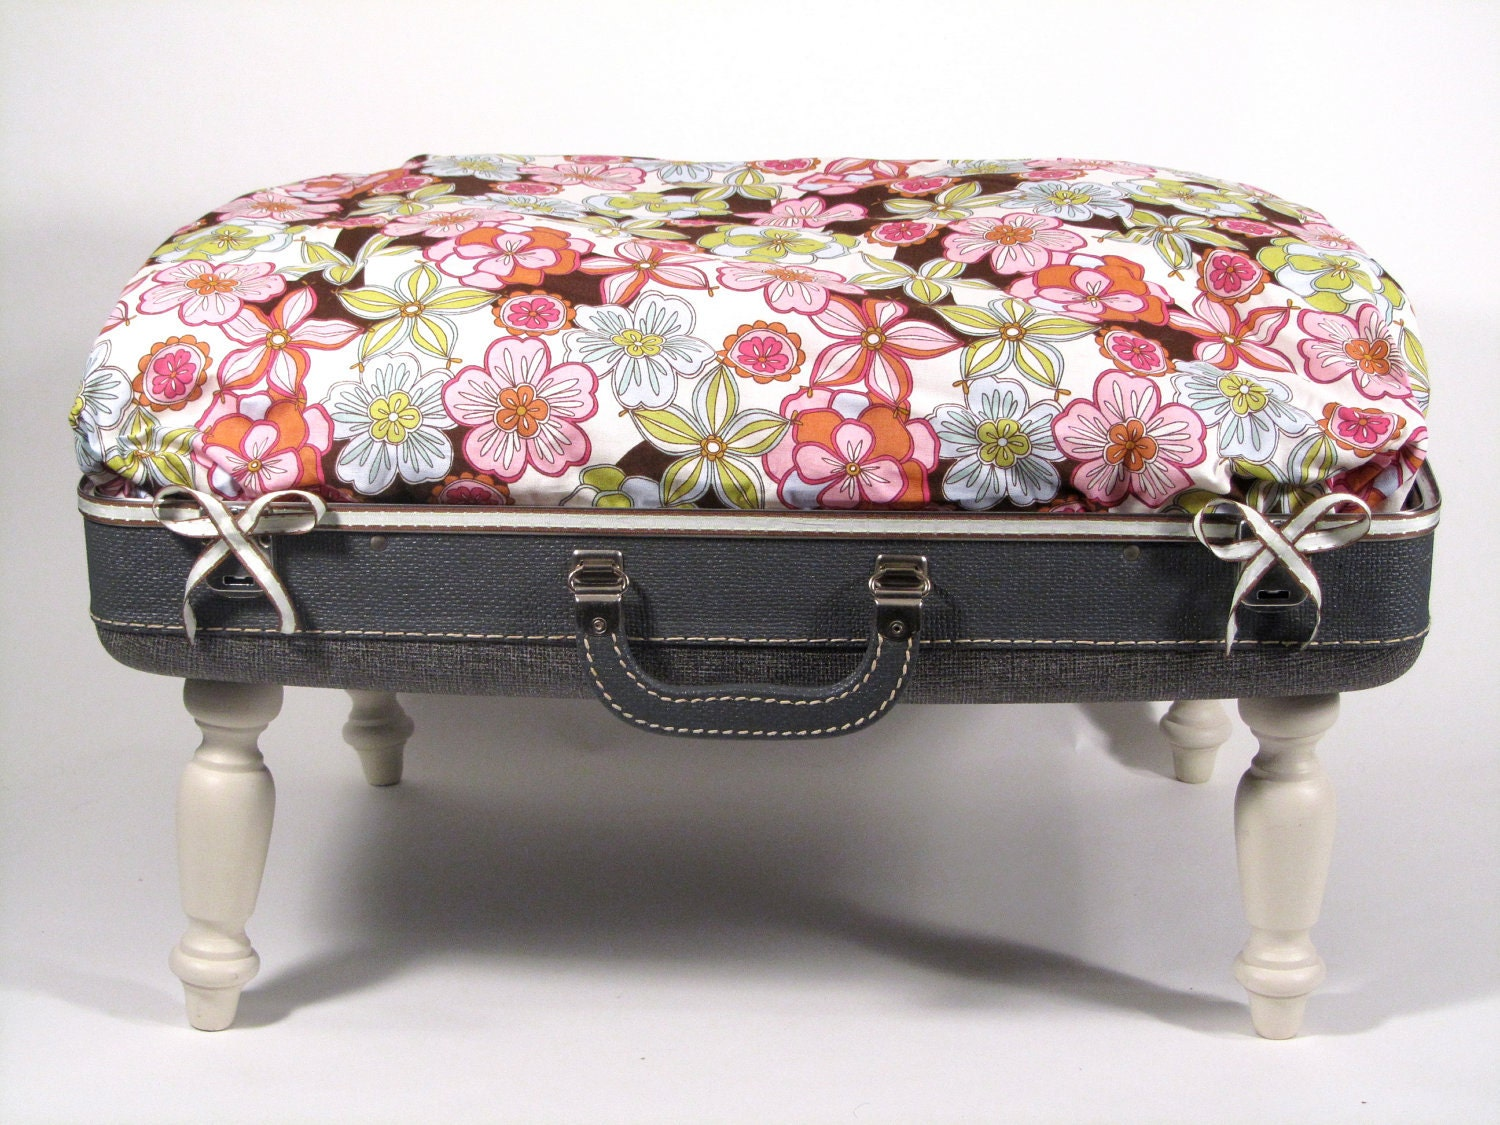 Pet Bed Vintage UpCycled / Reclaimed Suitcase